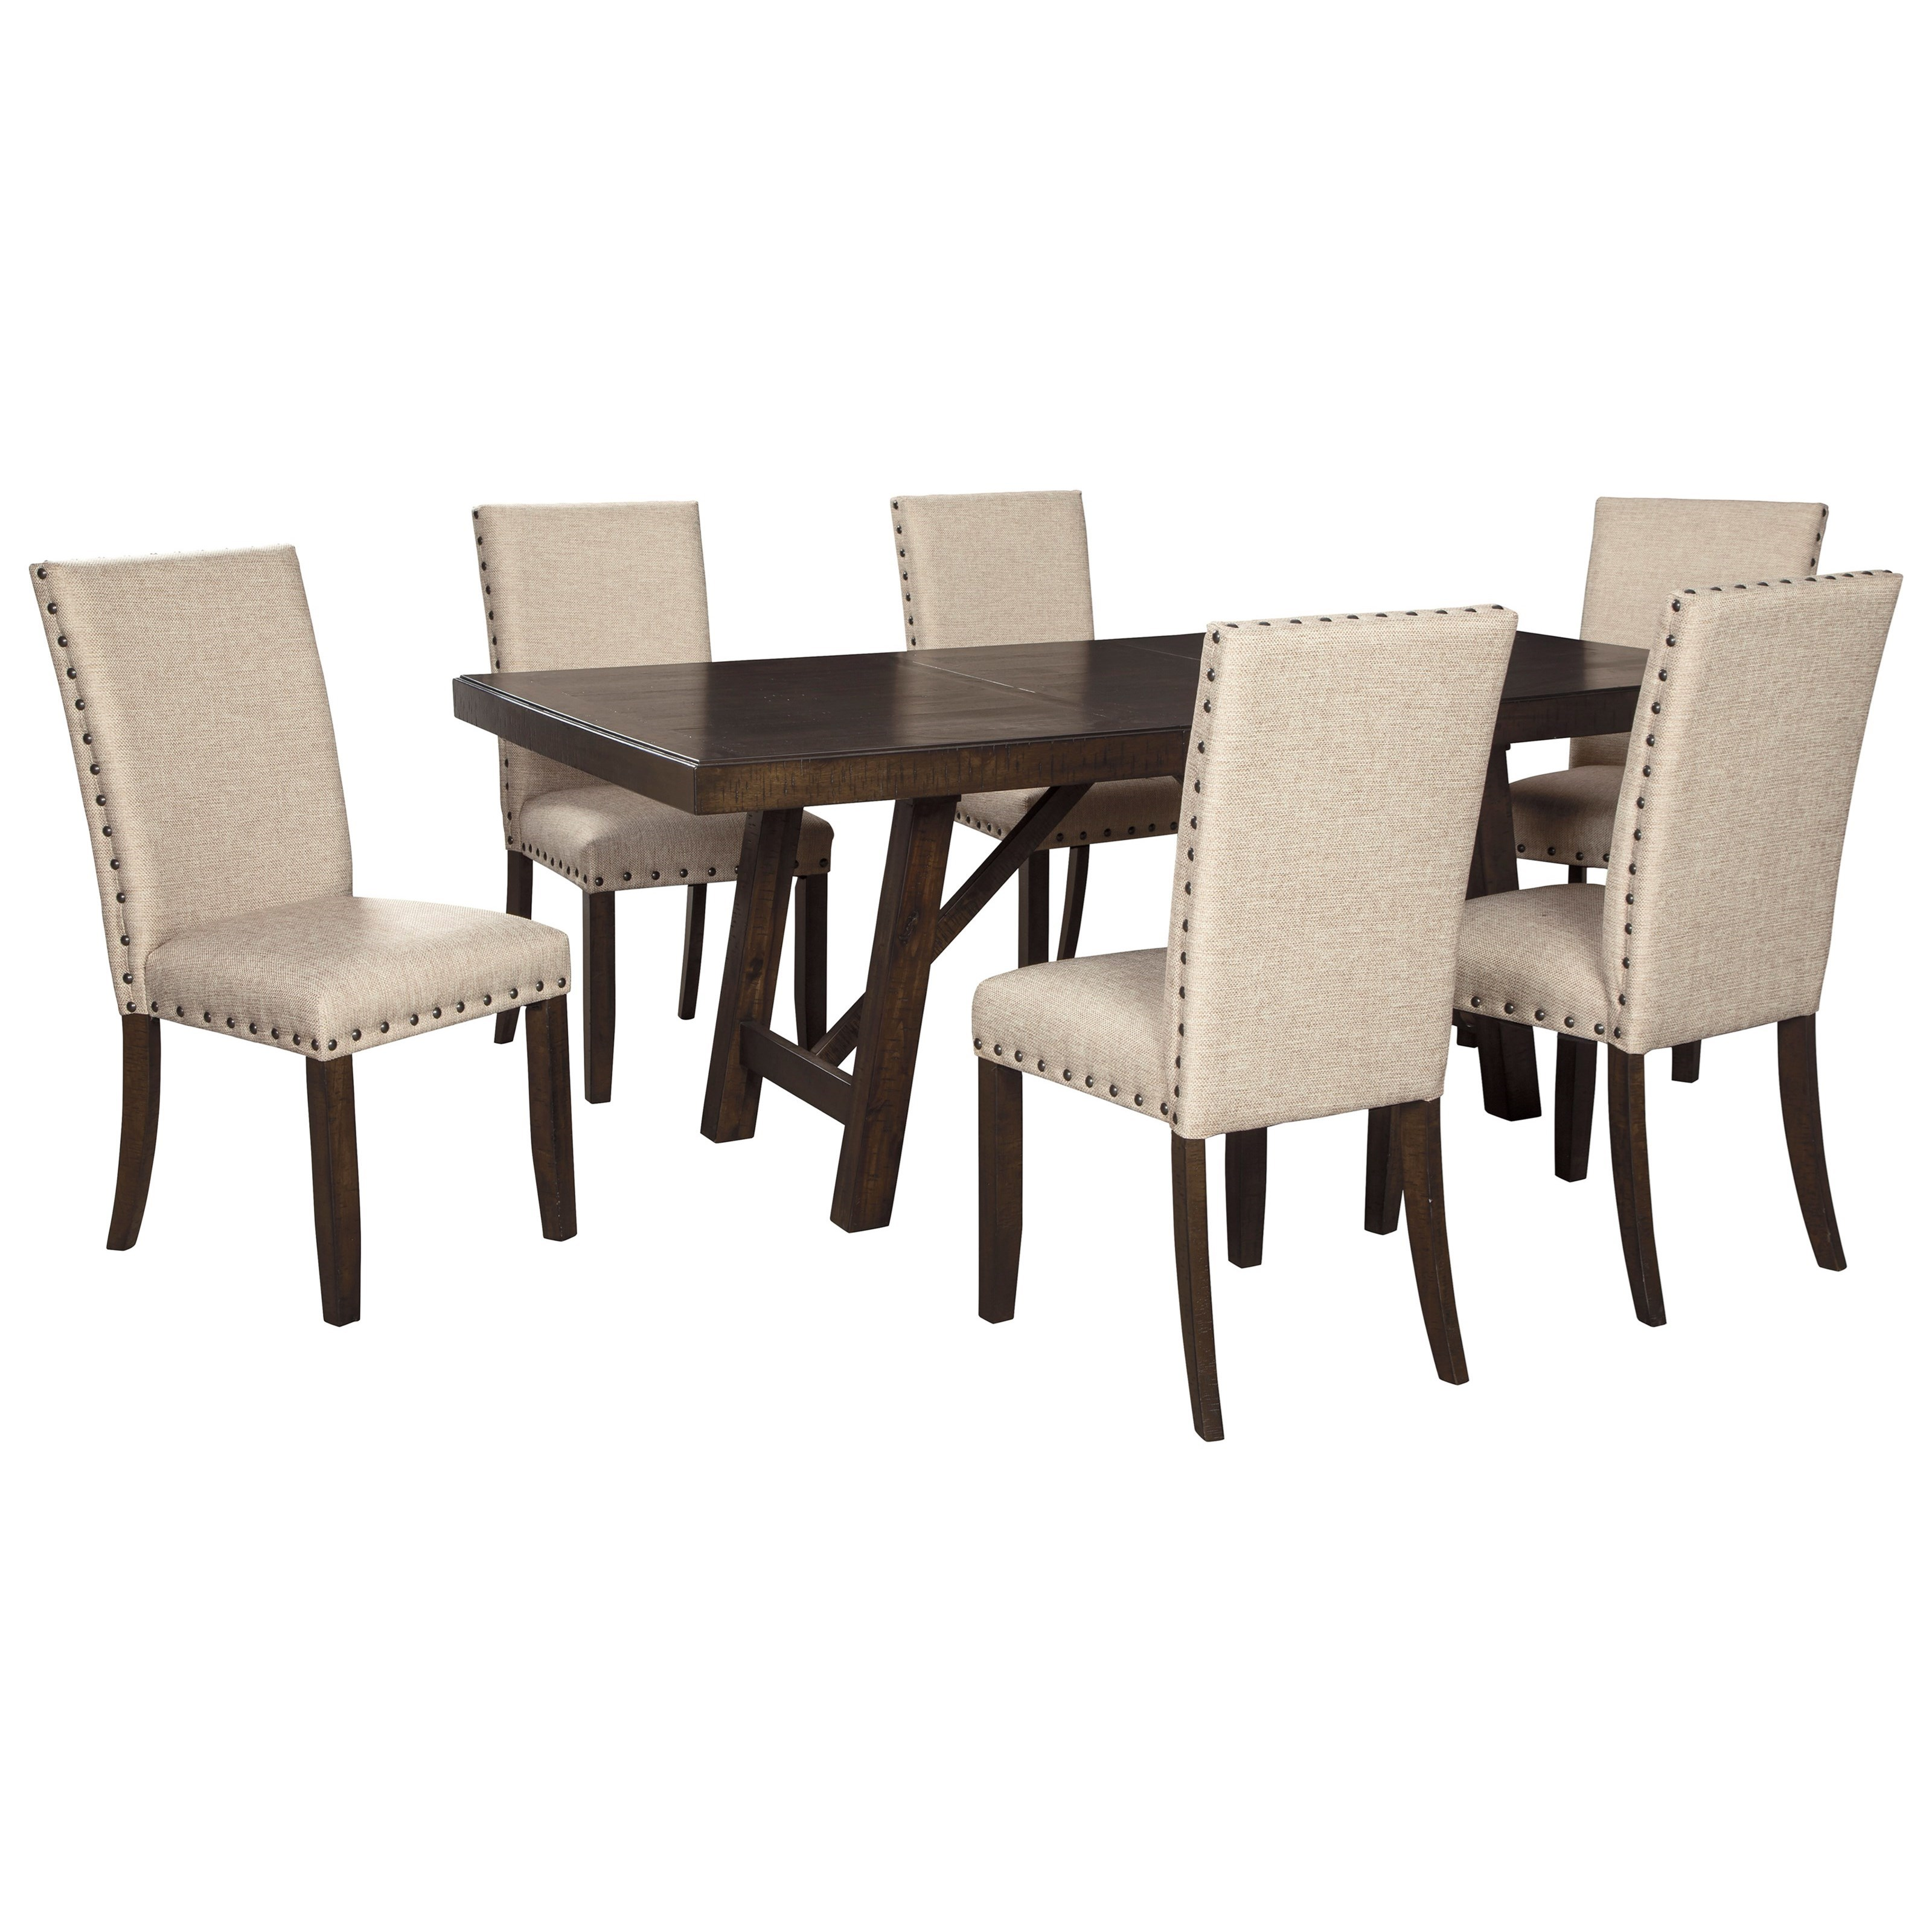 Rokane Dining Table Set for Six by Signature Design by Ashley at Northeast Factory Direct